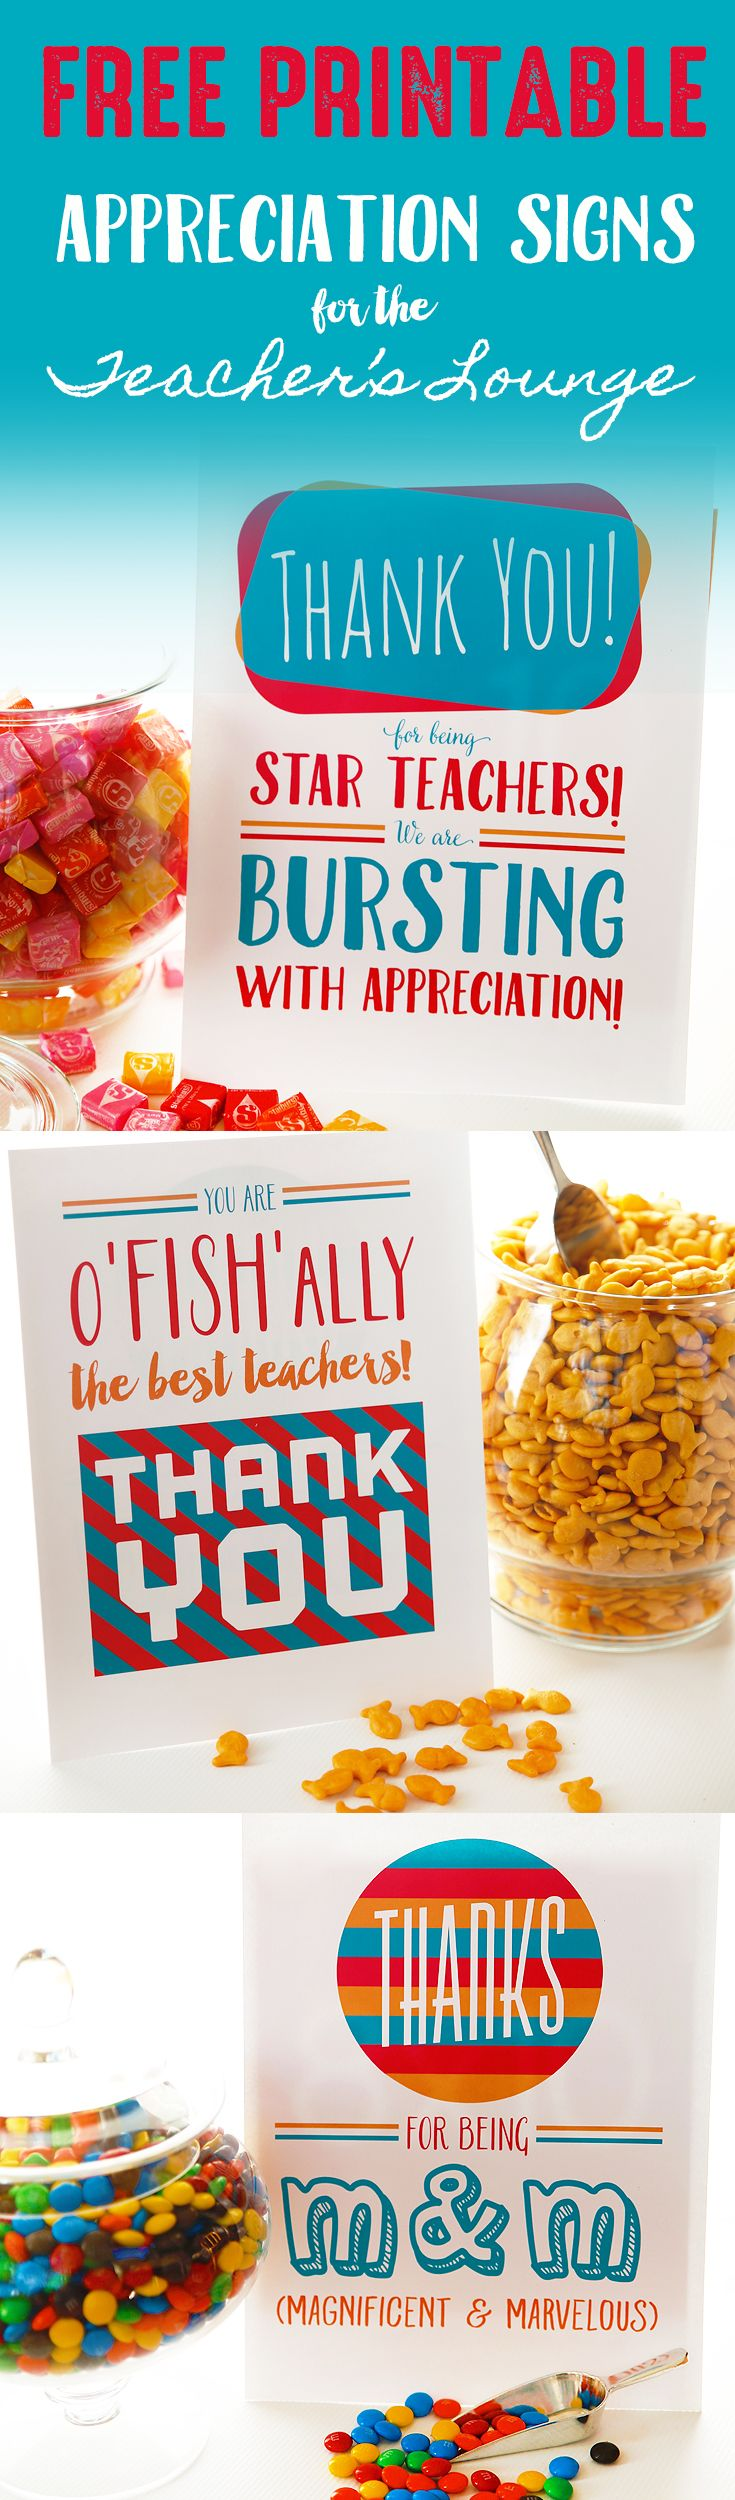 Printable Appreciation Signs For Teacher's Lounge